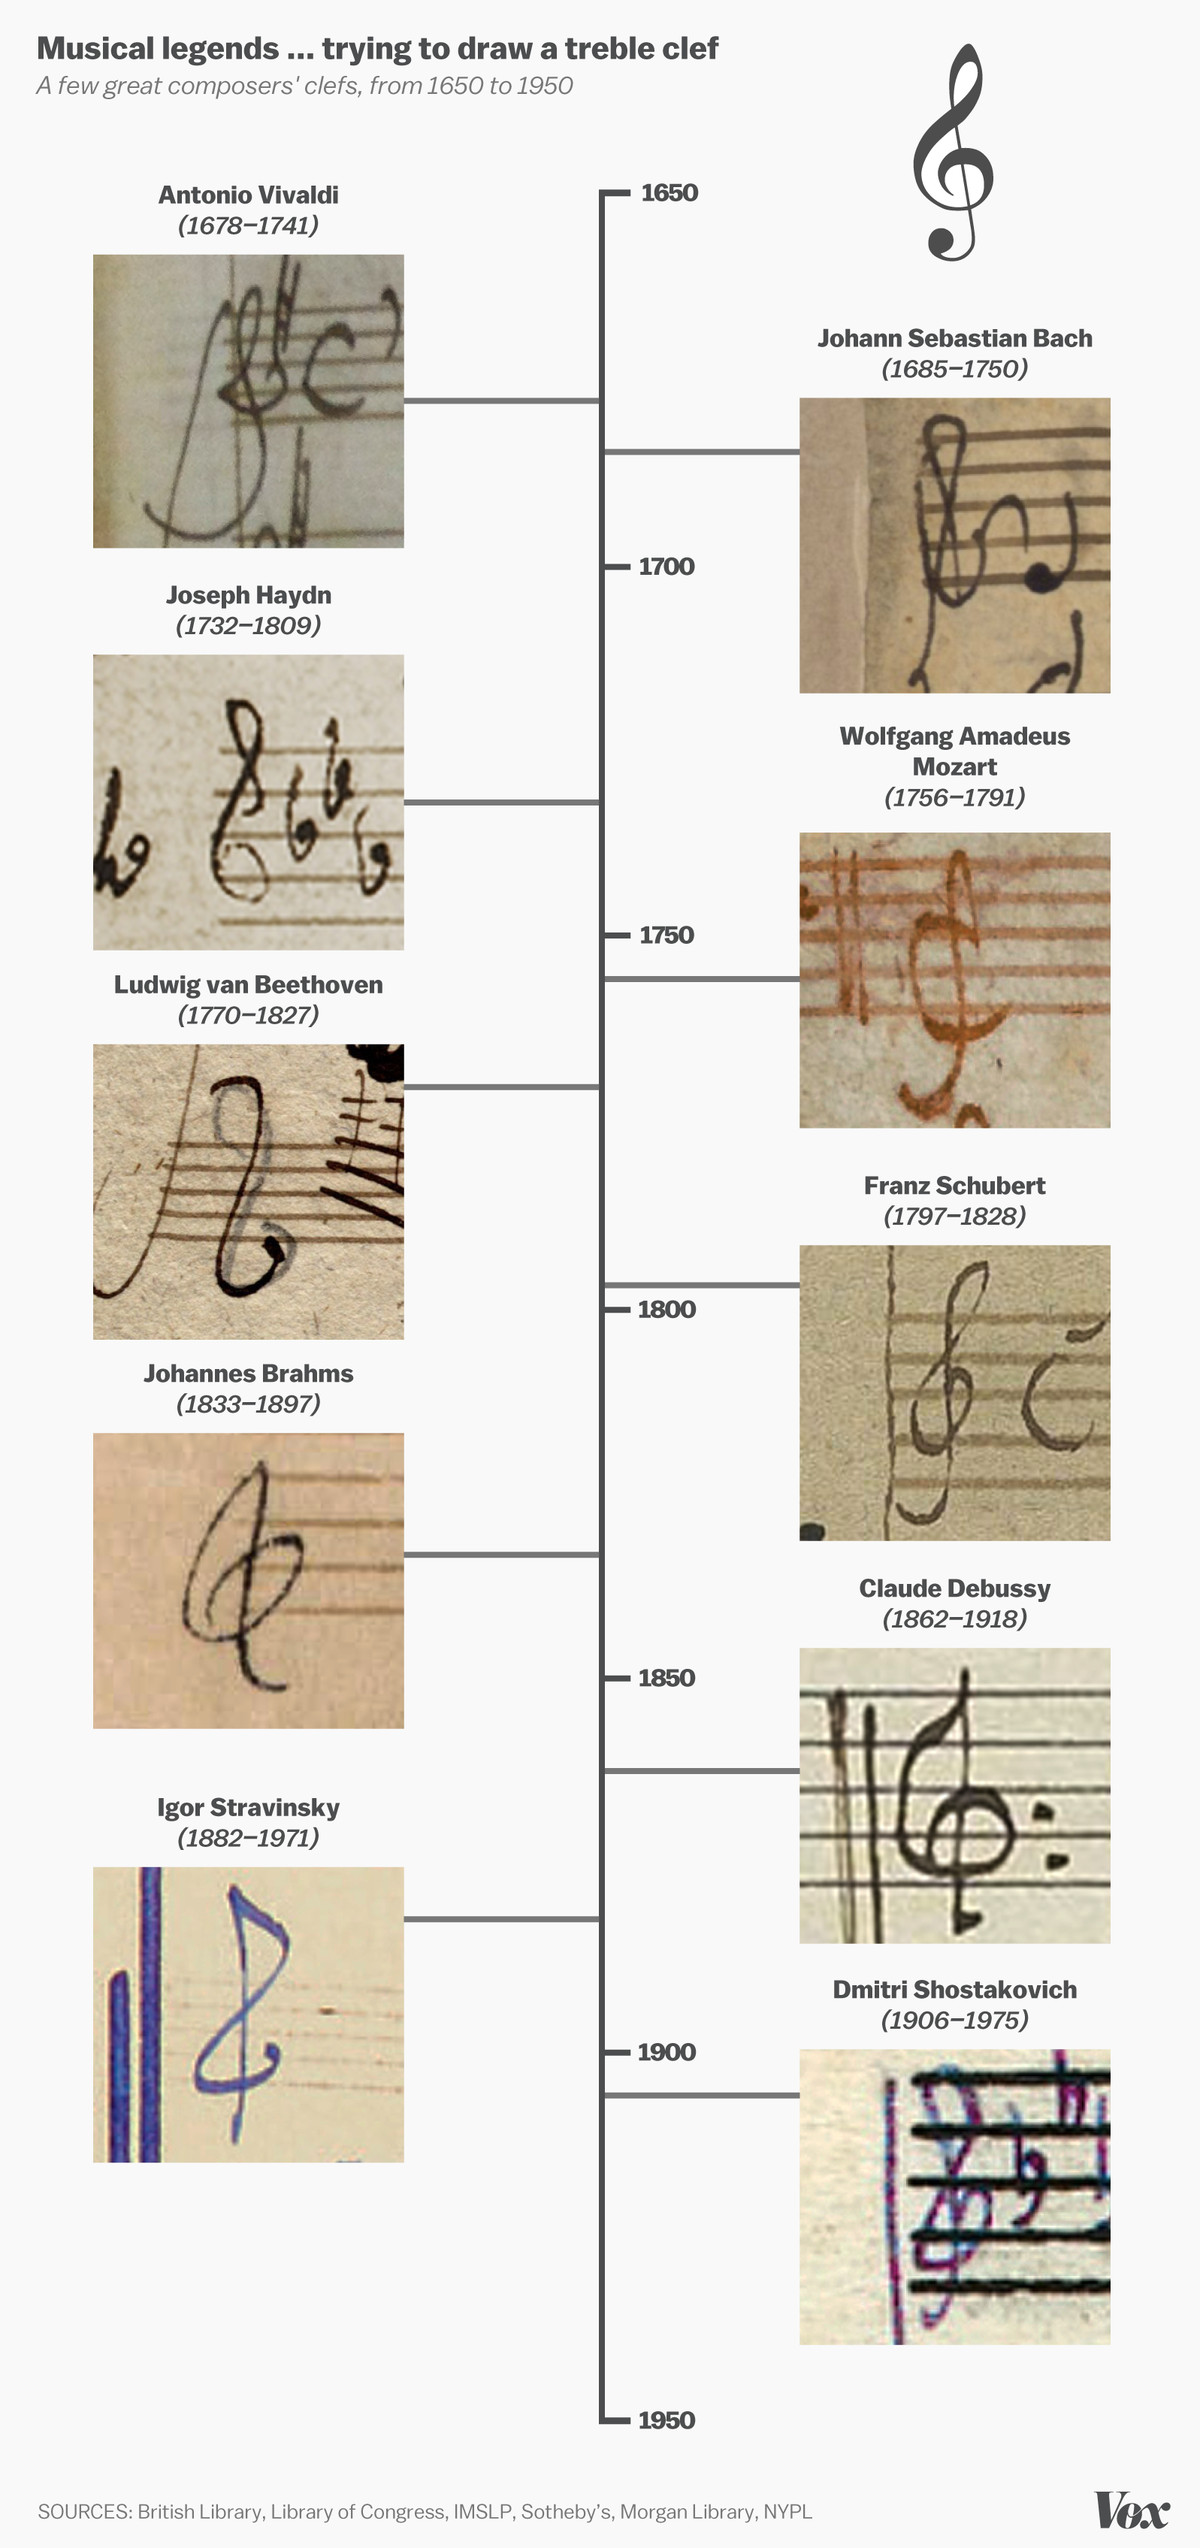 Musical geniuses ... trying to draw a treble clef